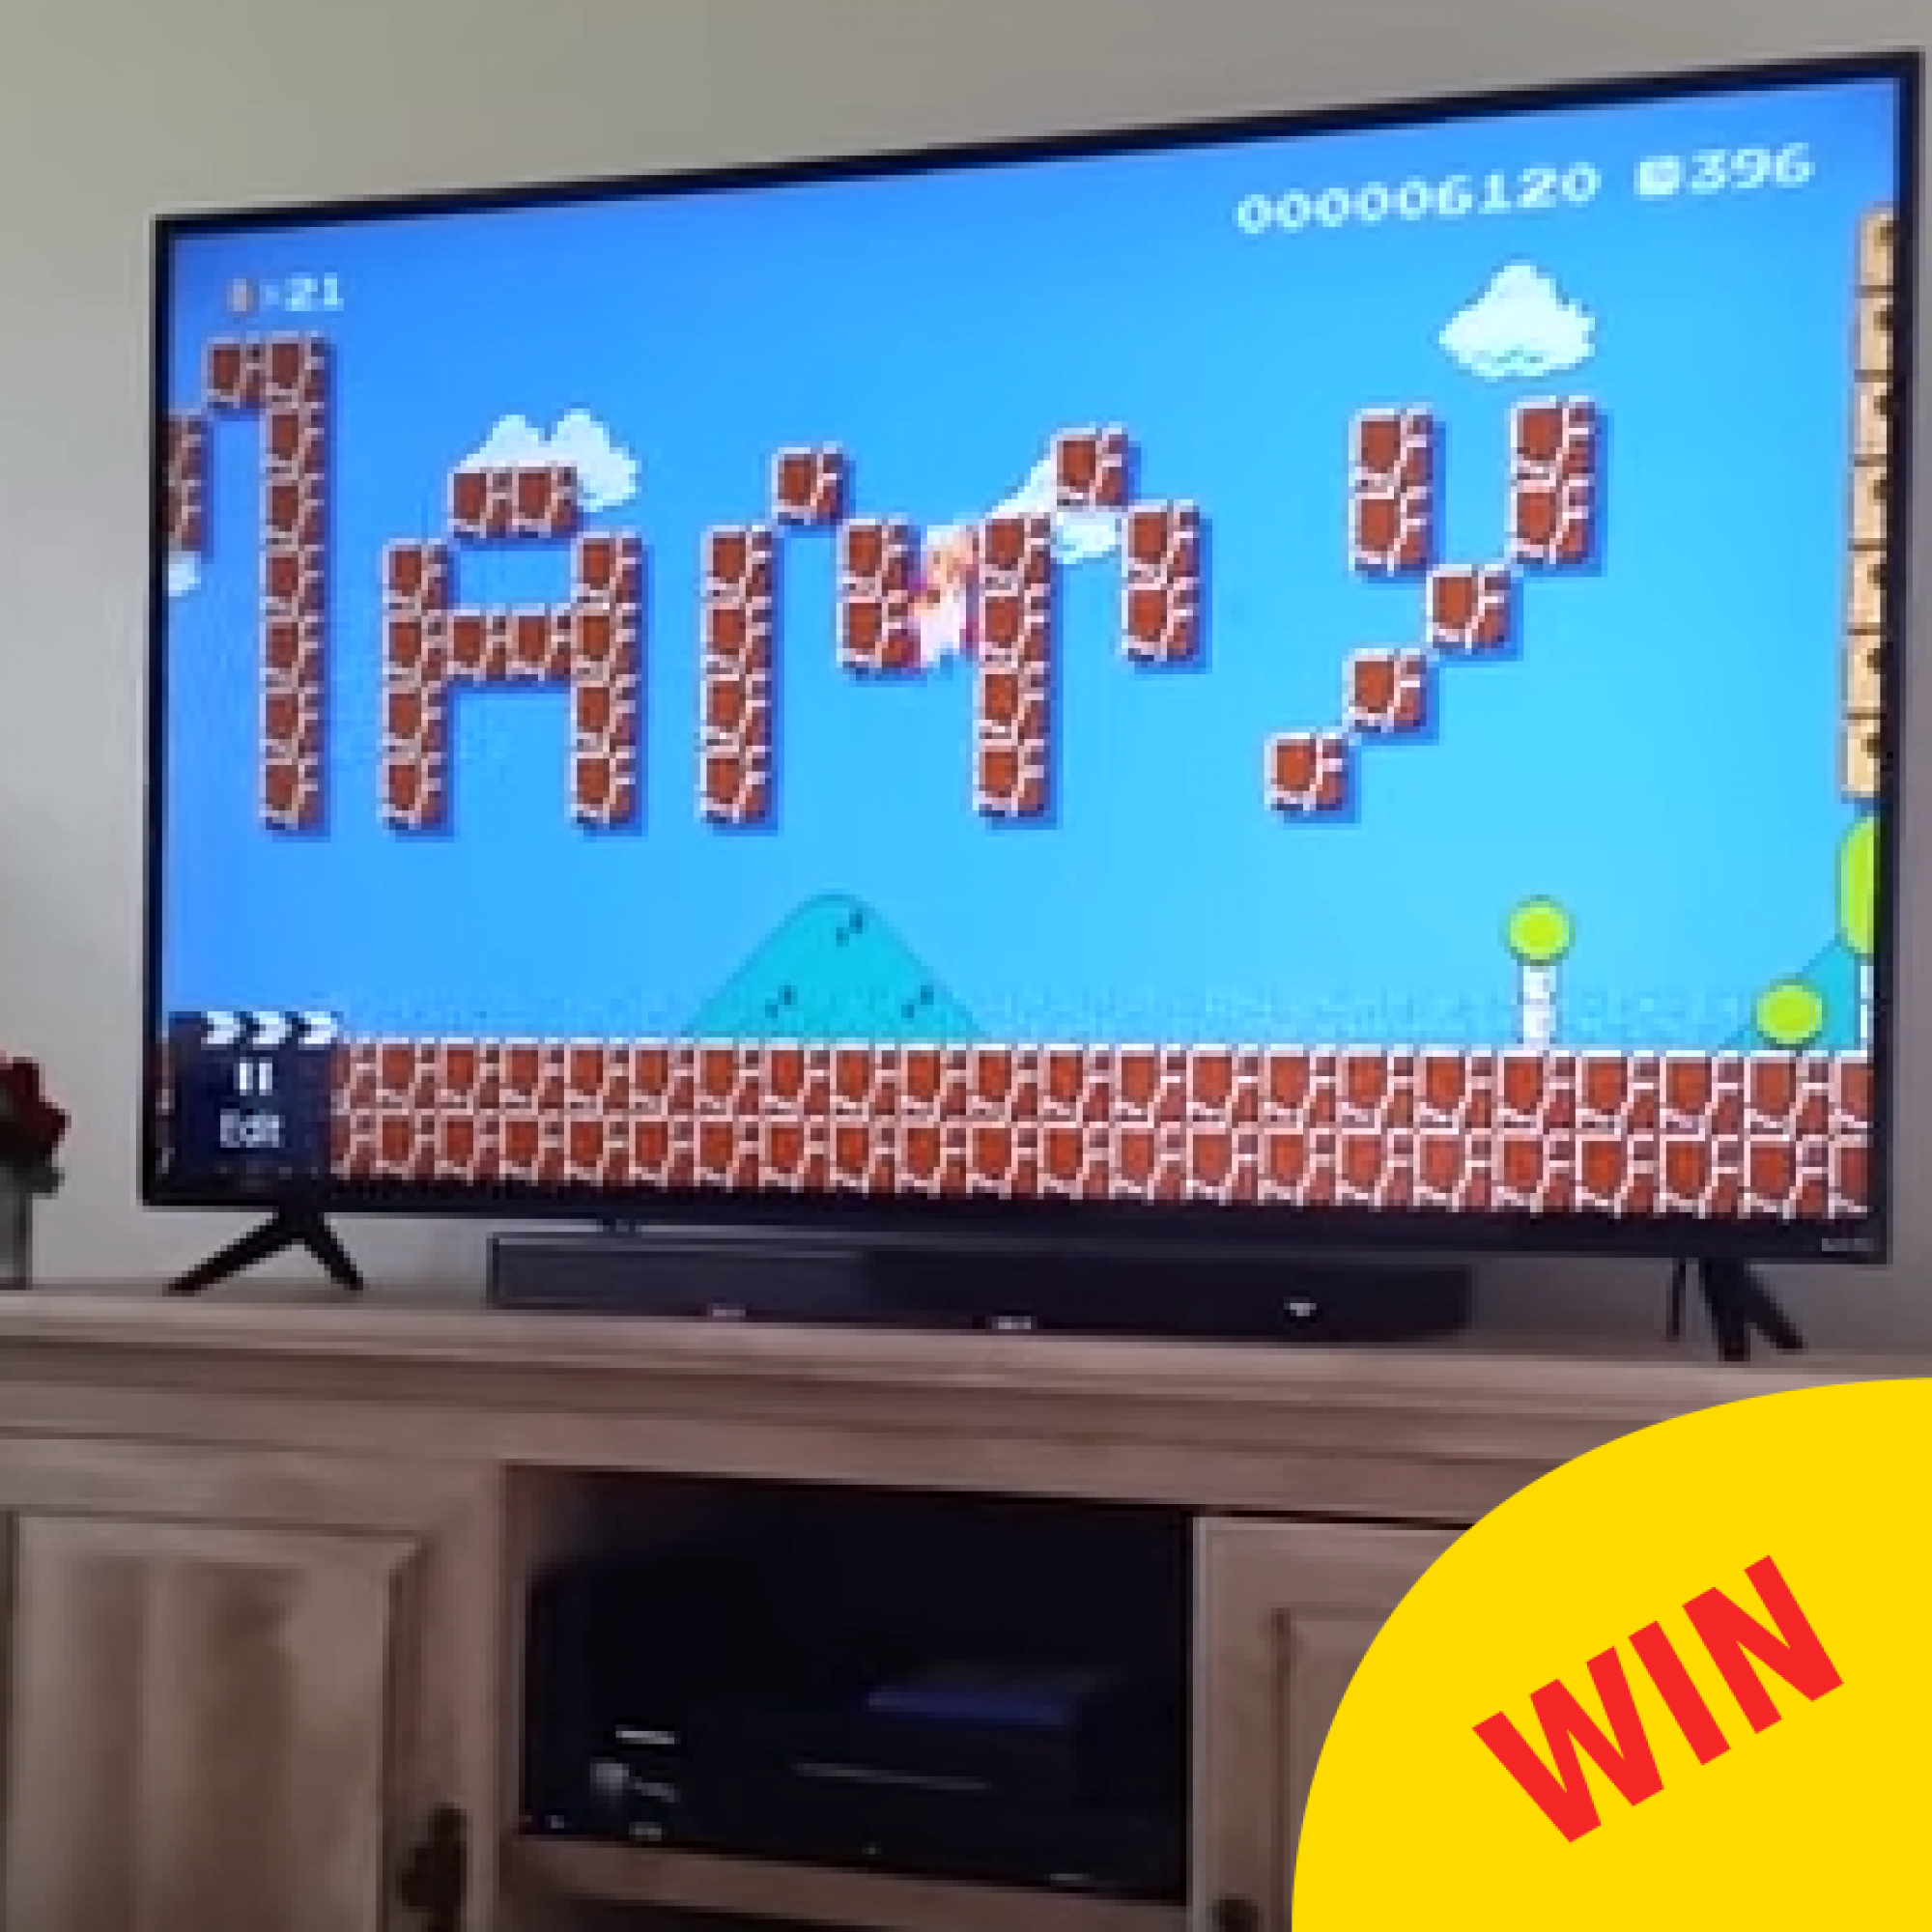 This guy proposed to his girlfriend in Super Mario Bros and it was joyous